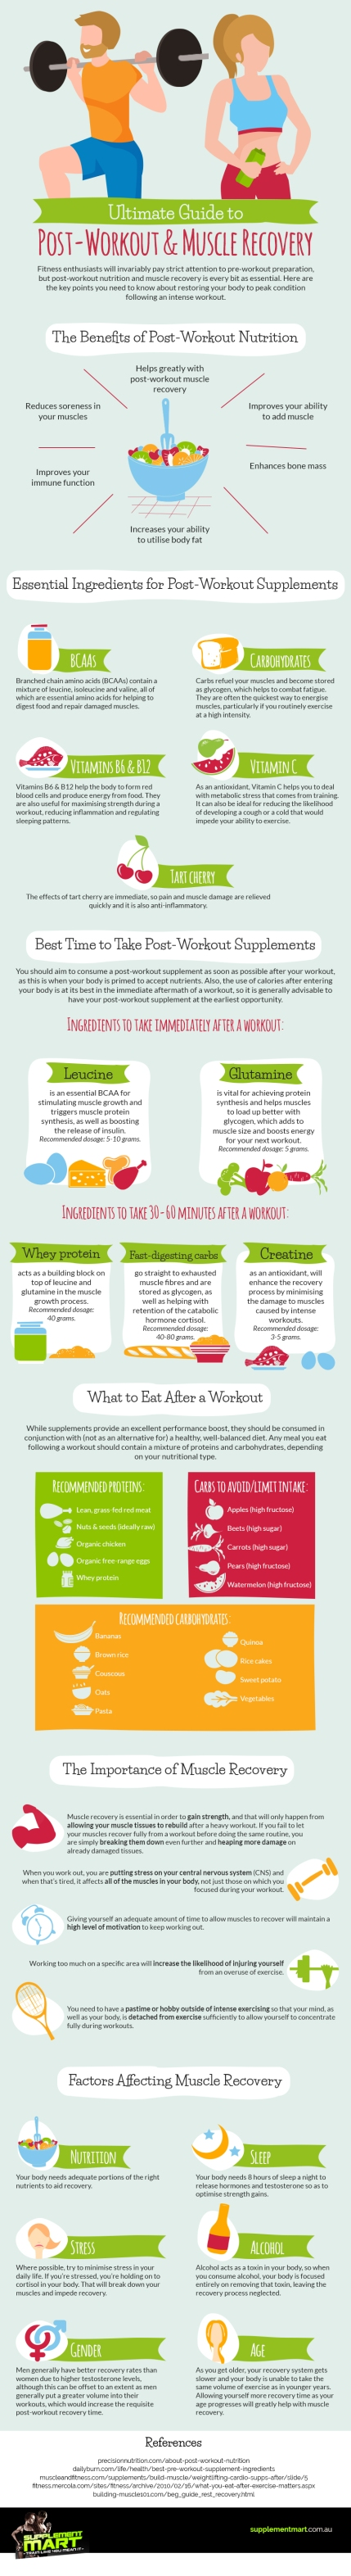 guide-to-Post-Workout-Muscle-Recovery-Infographic